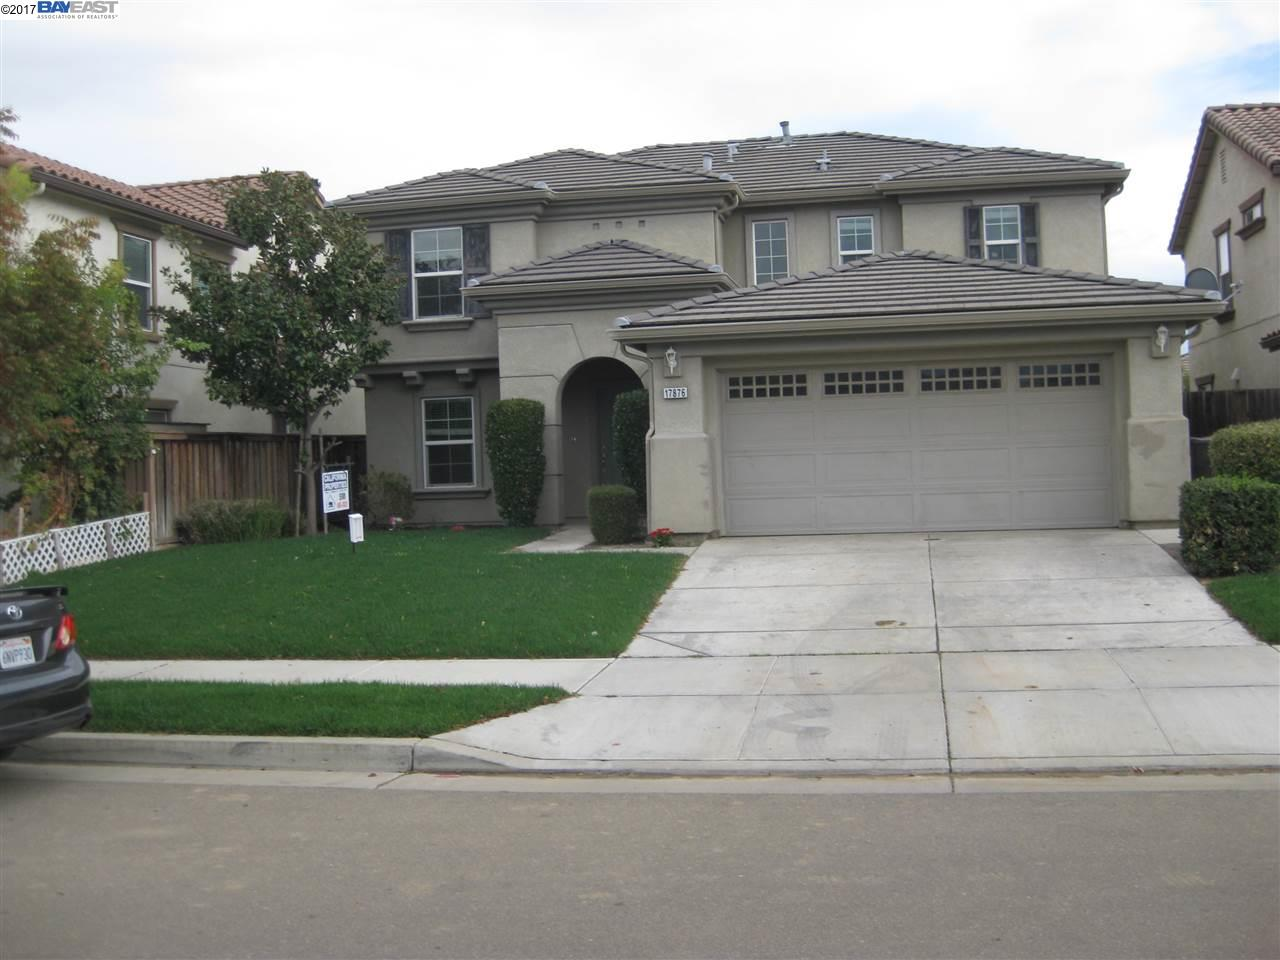 Single Family Home for Sale at 17876 Daffodil Hill Street 17876 Daffodil Hill Street Lathrop, California 95330 United States